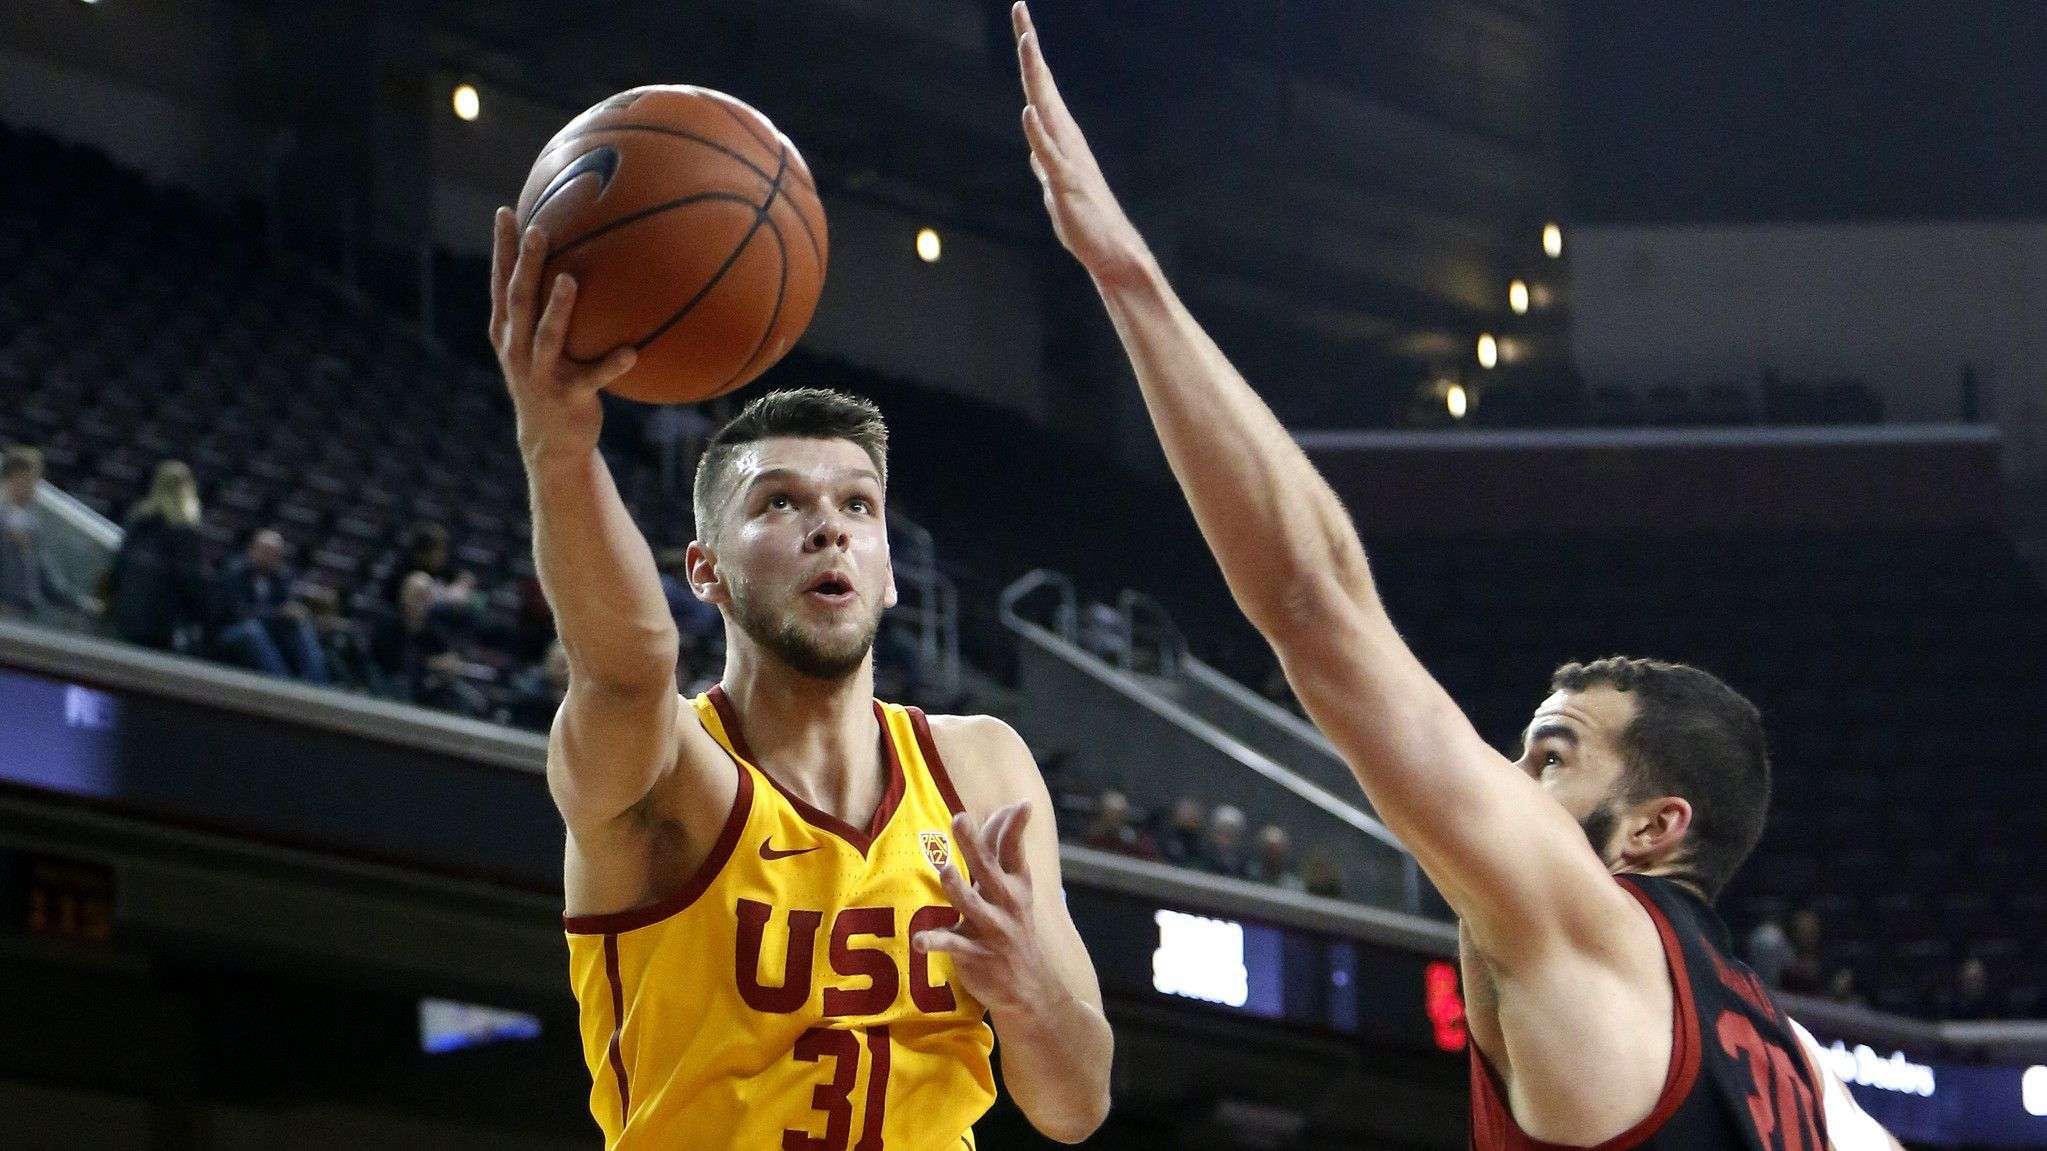 USC defeats Stanford to improve to 2-0 in Pac-12 play